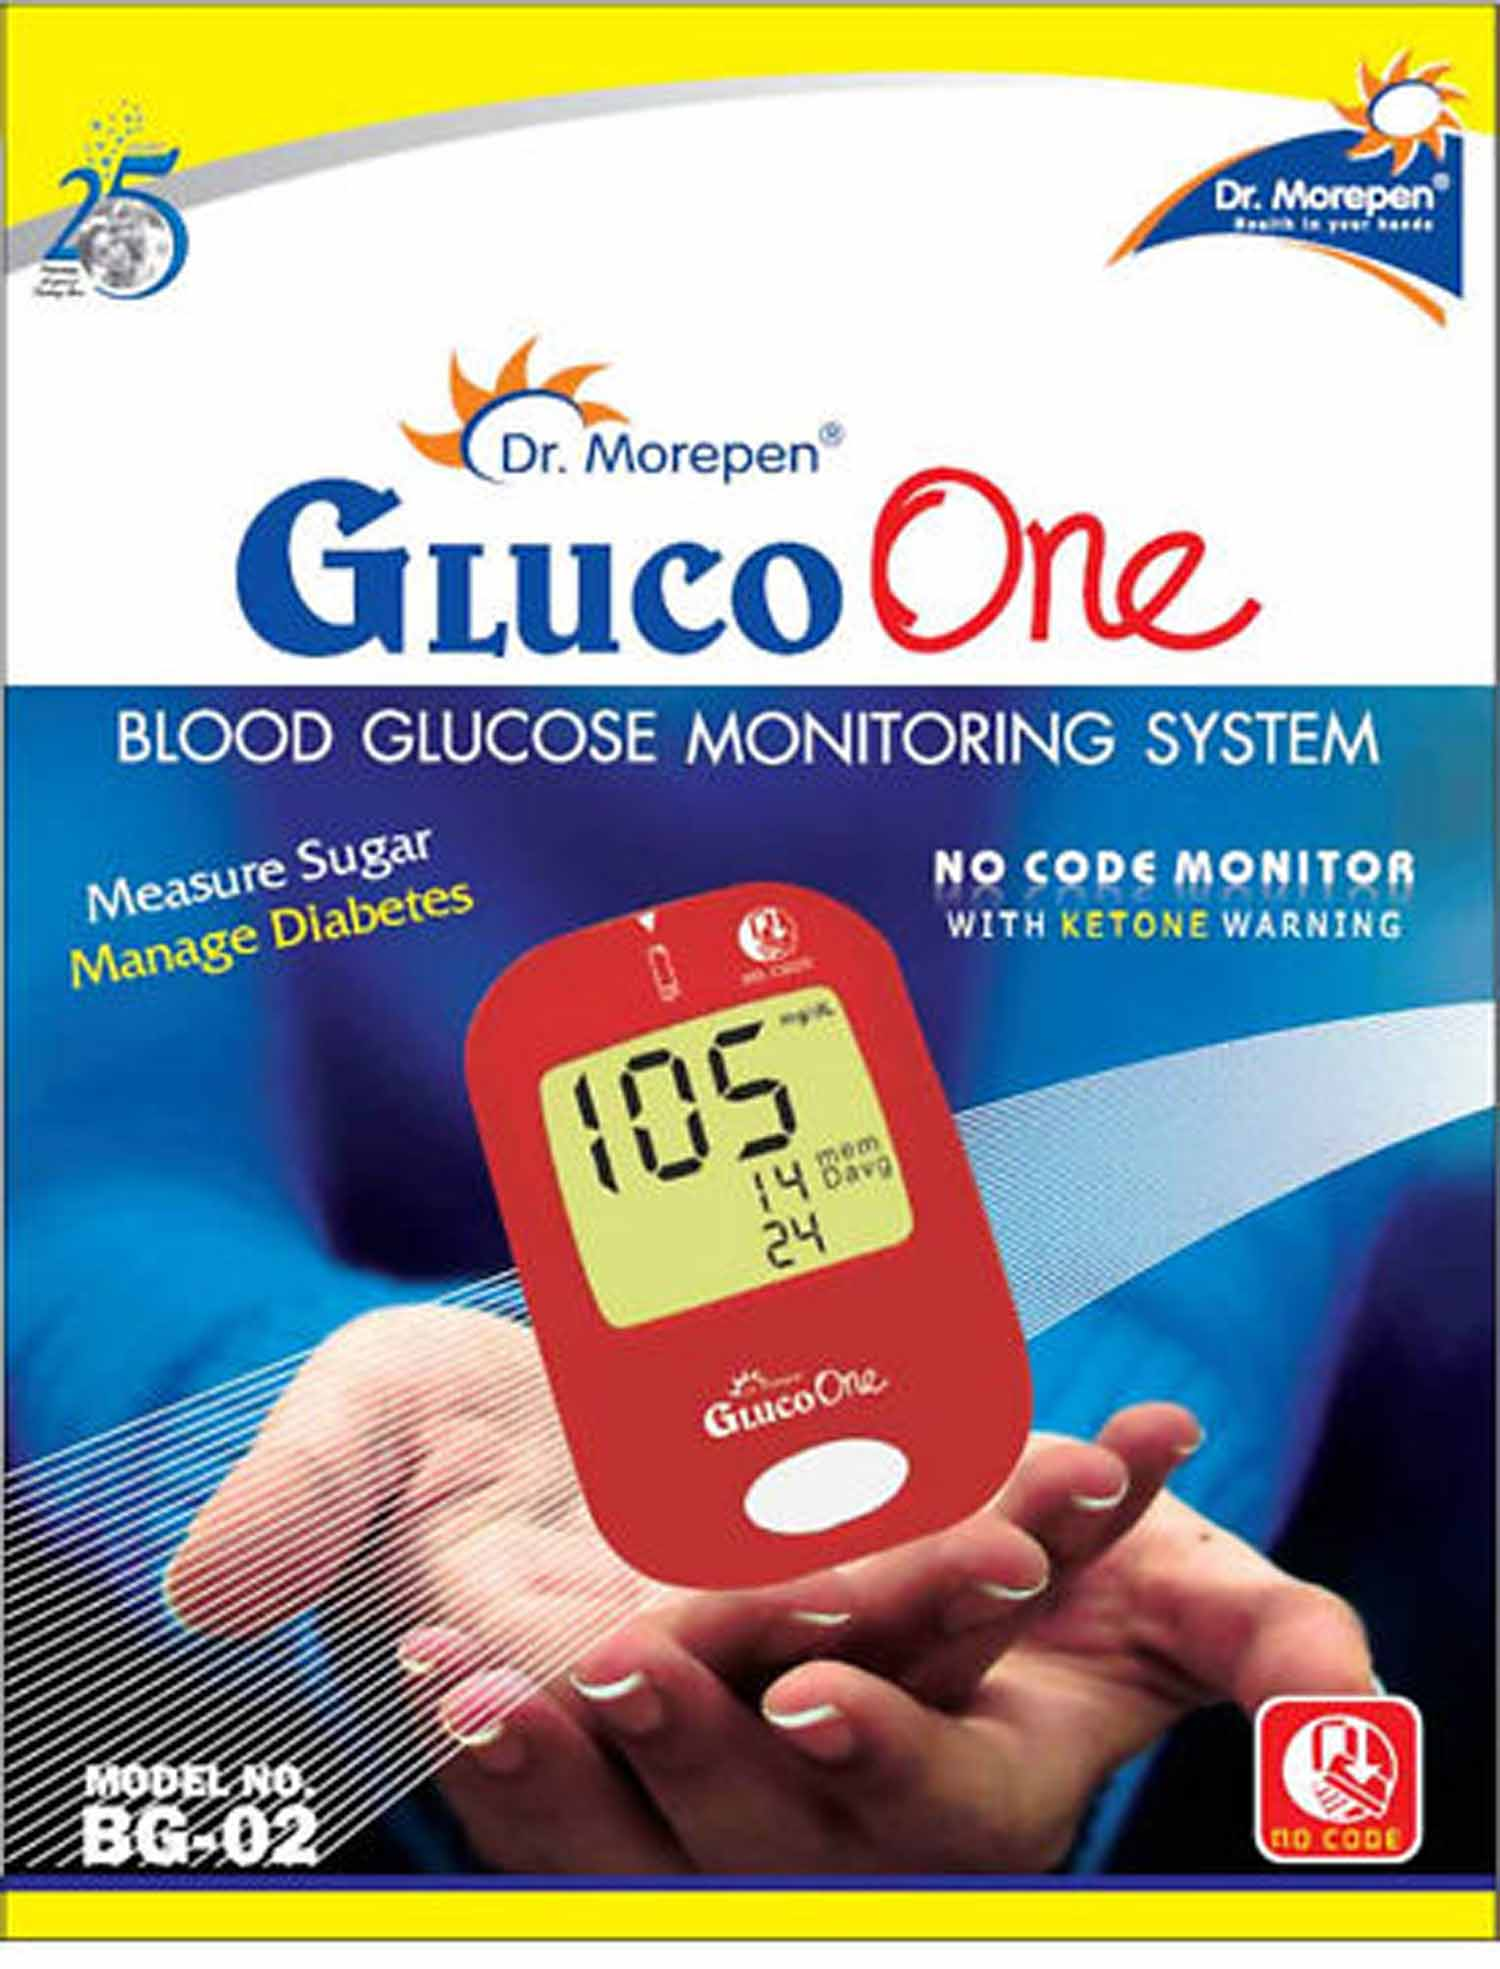 Dr Morepen Gluco One BG 02 Blood Sugar VAT Bill Glucose No Coding Monitor